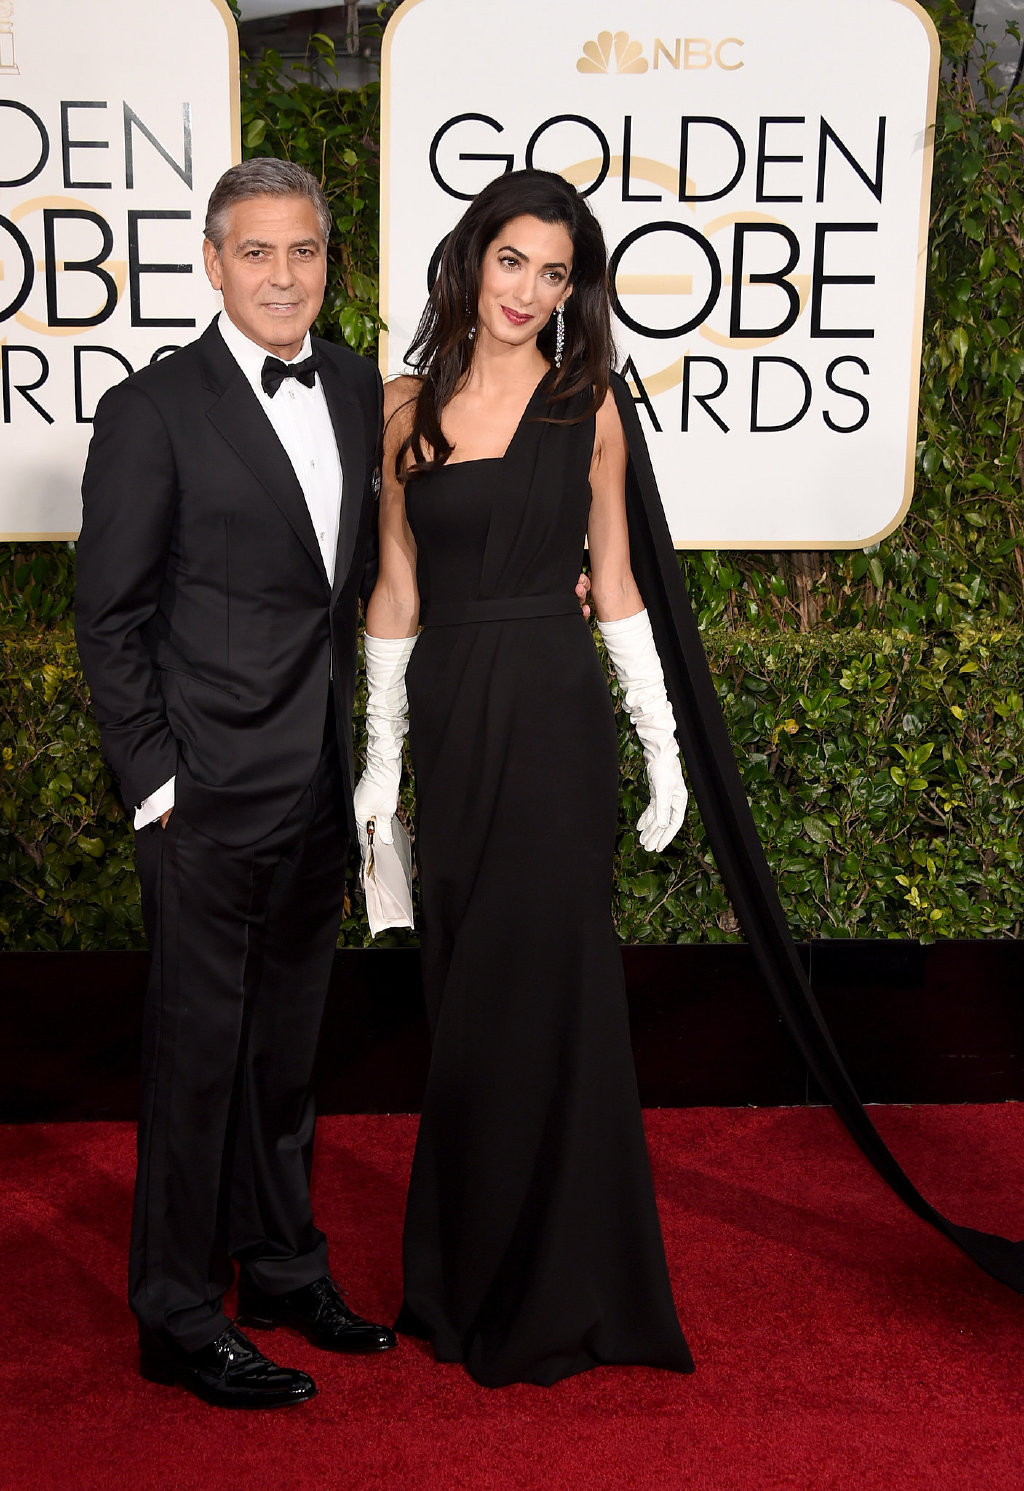 George Clooney at the Golden Globes January 2015 - Page 4 4aff7849jw1eo6kfv6c8oj21331kw7jy